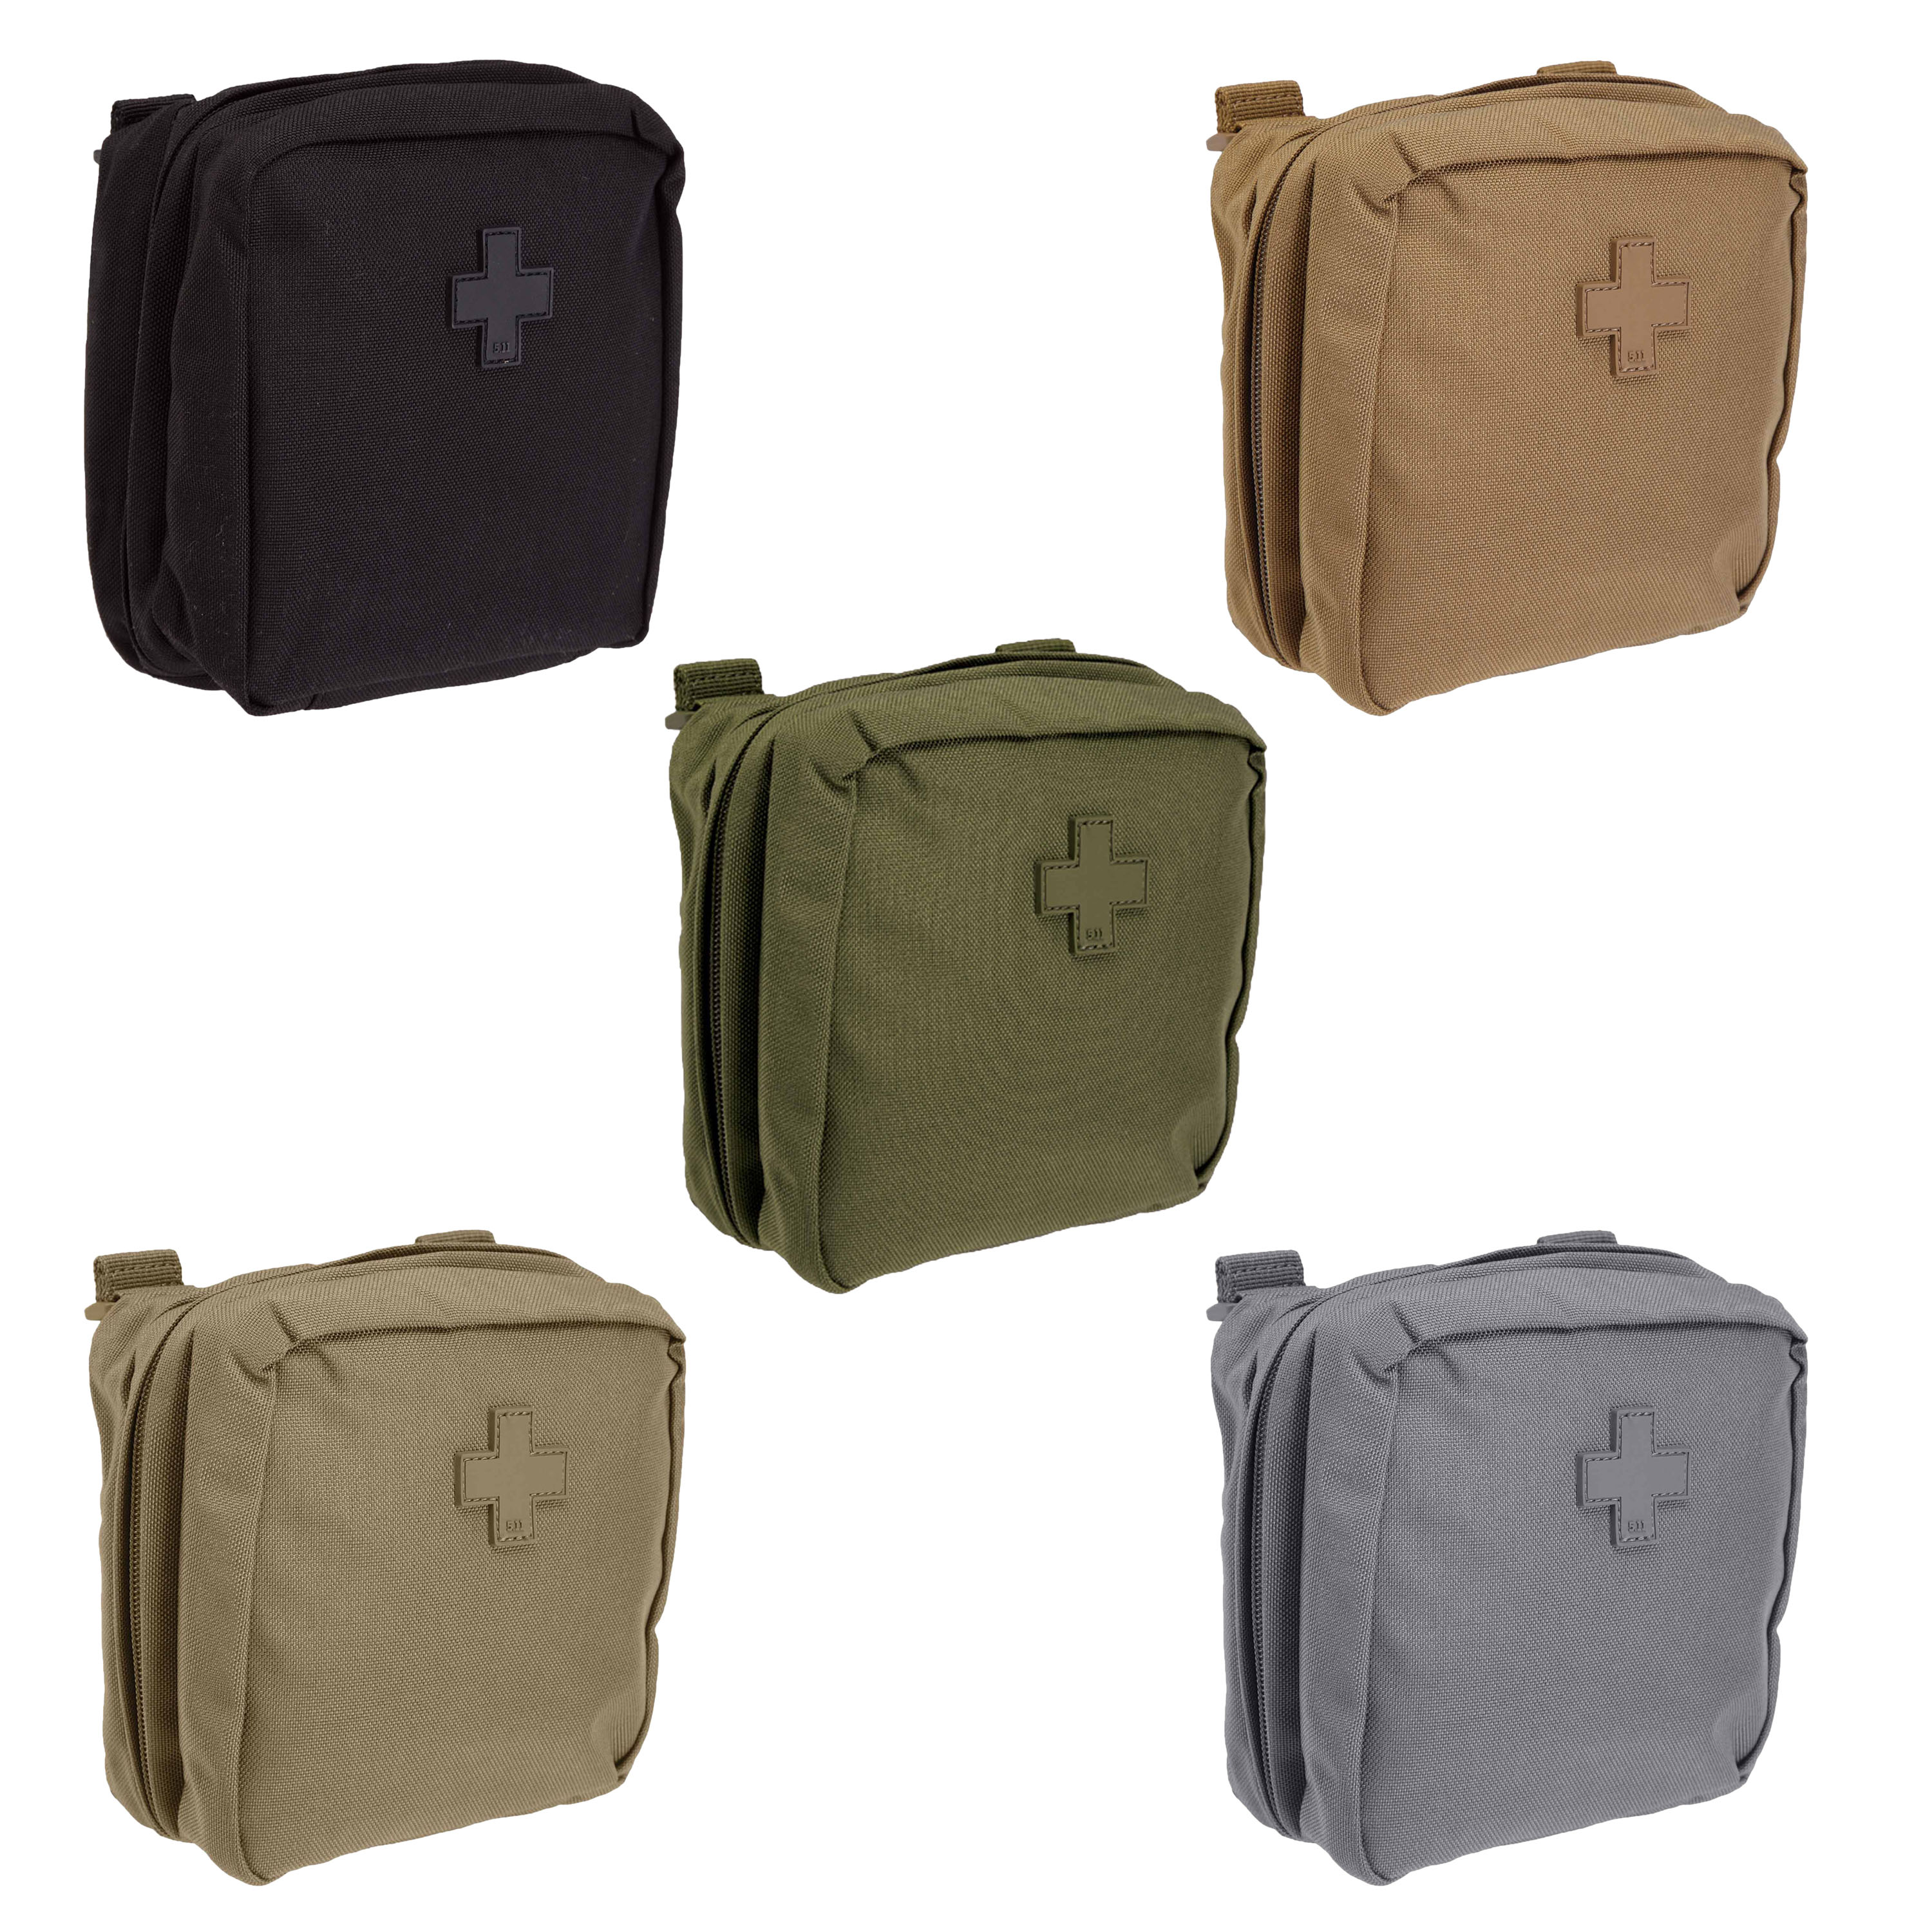 Details About 5 11 Tactical 6 X Medical Pouch Bag Nylon Molle Mesh Pockets Style 58715